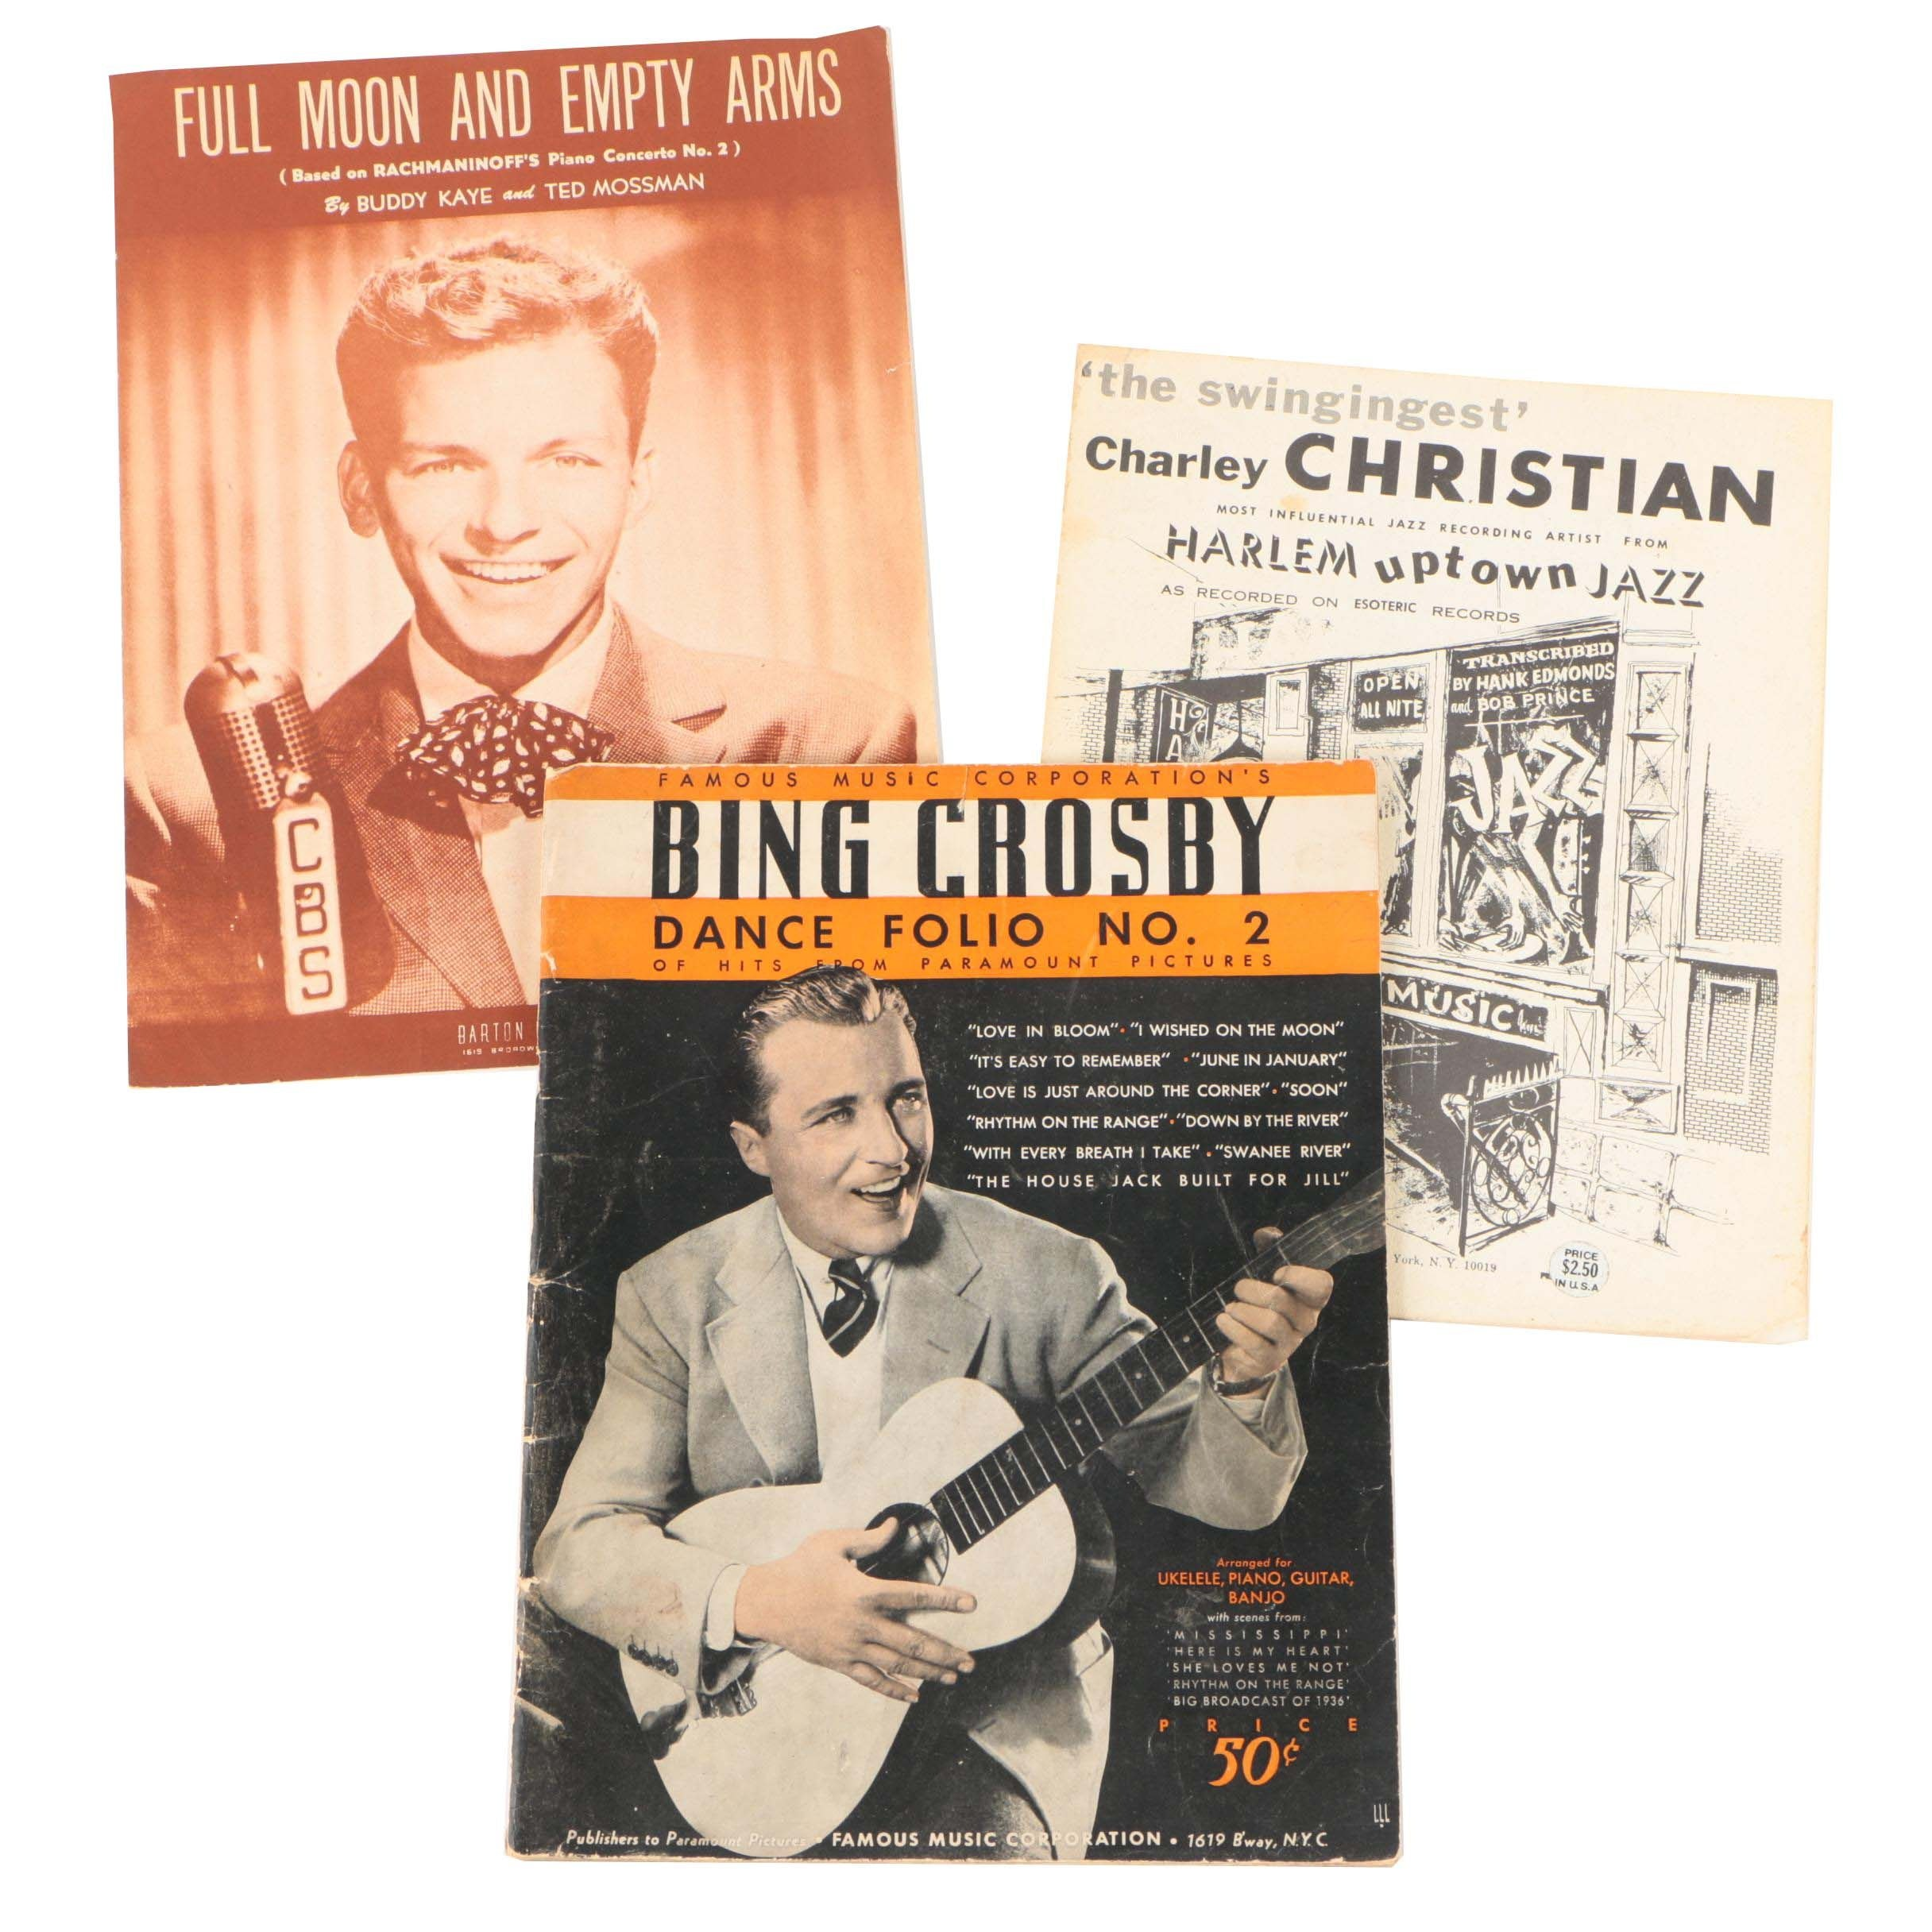 Sheet Music featuring Bing Crosby, Charley Christian, and More, 1930s-1950s